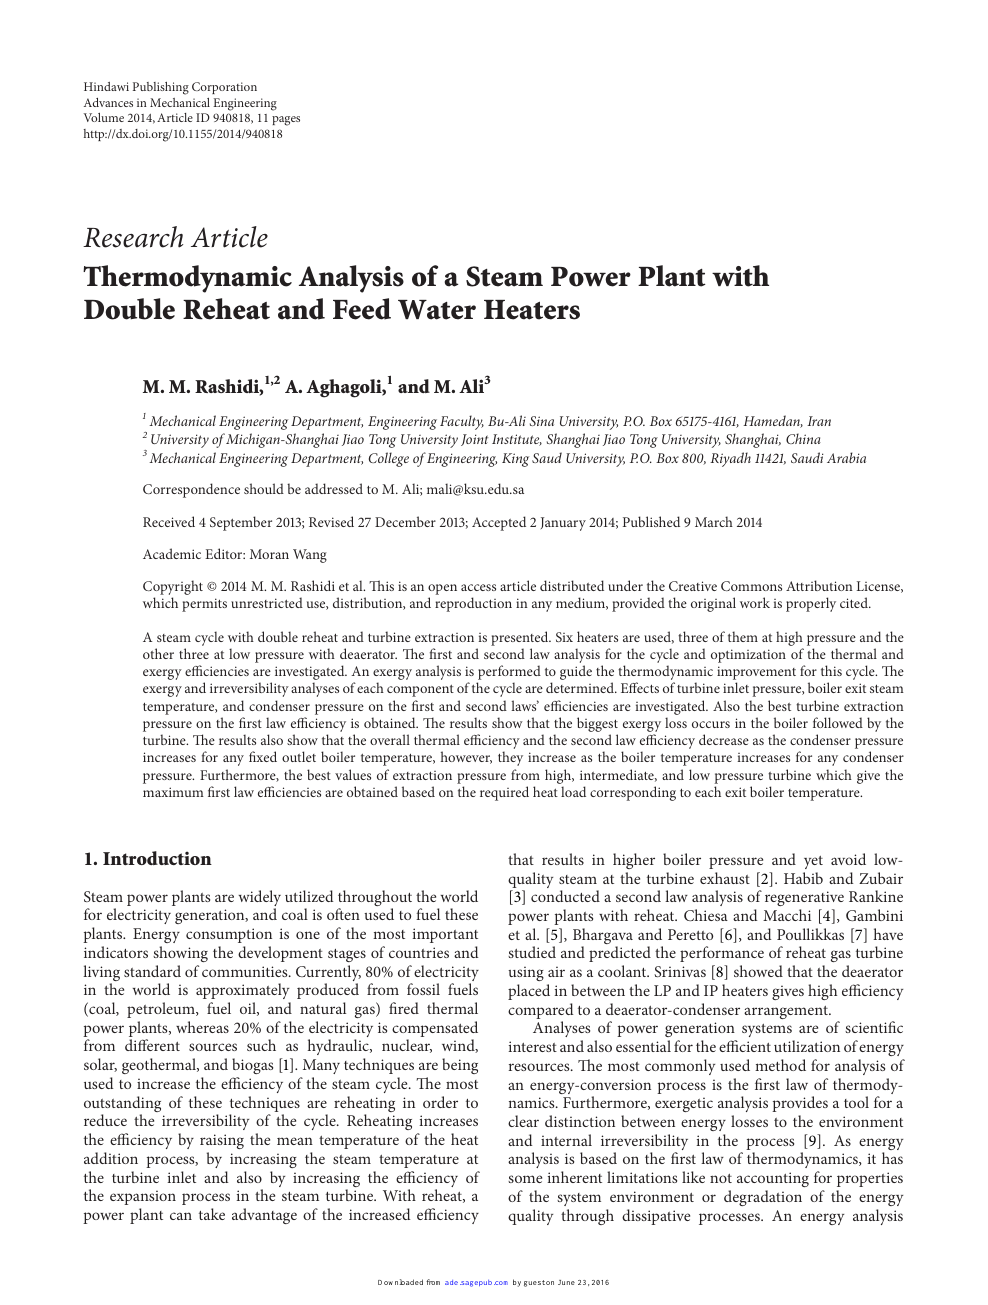 Thermodynamic Analysis of a Steam Power Plant with Double Reheat and